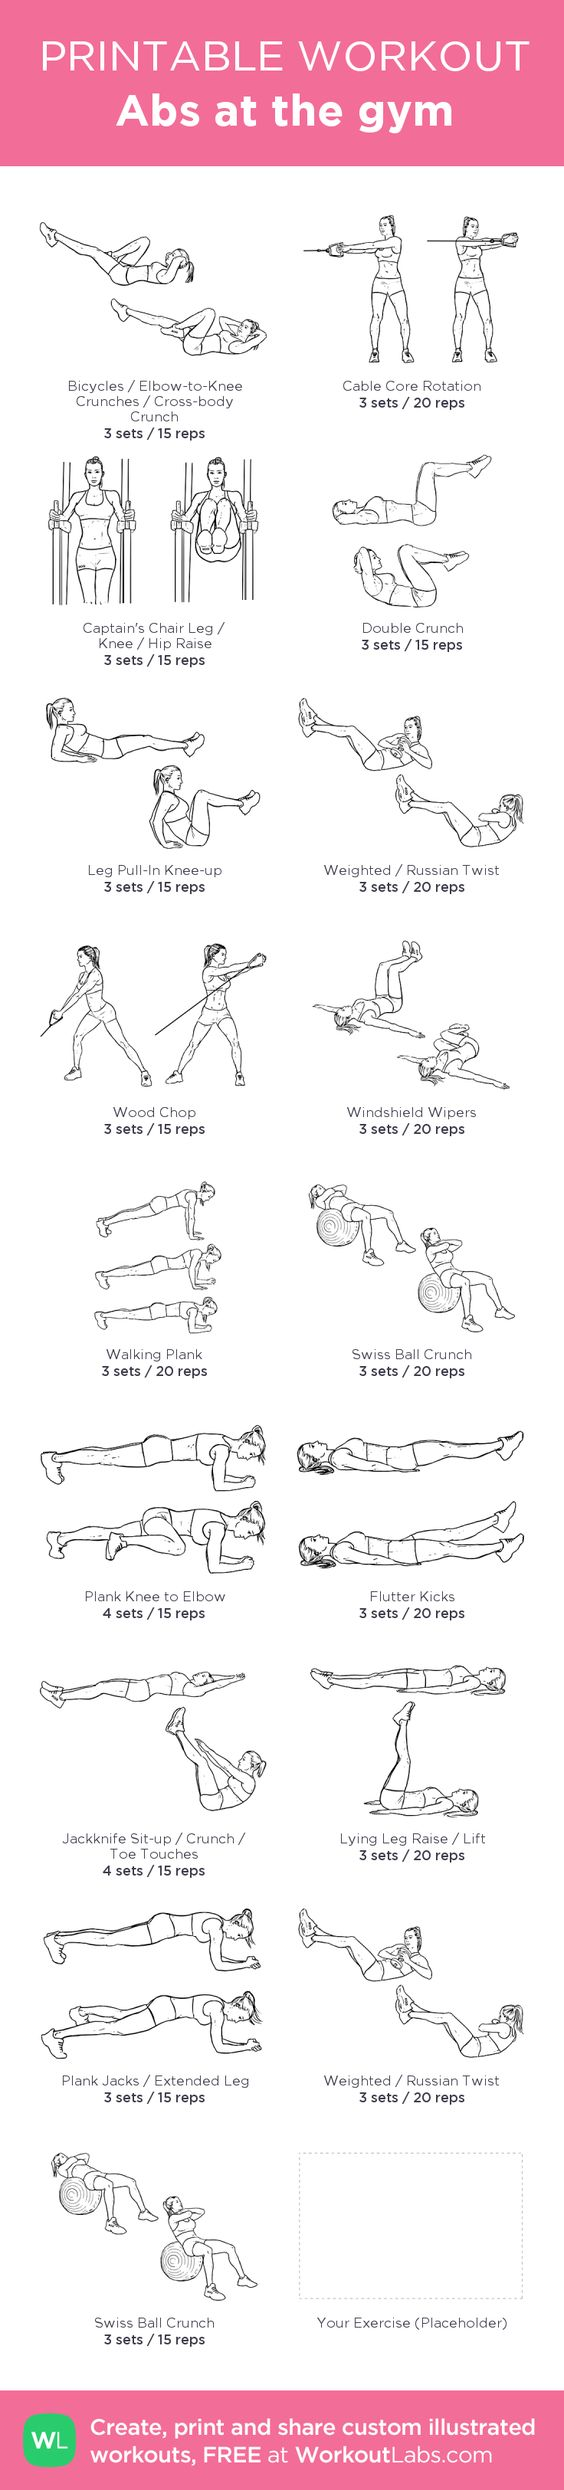 Agile image intended for printable ab workout